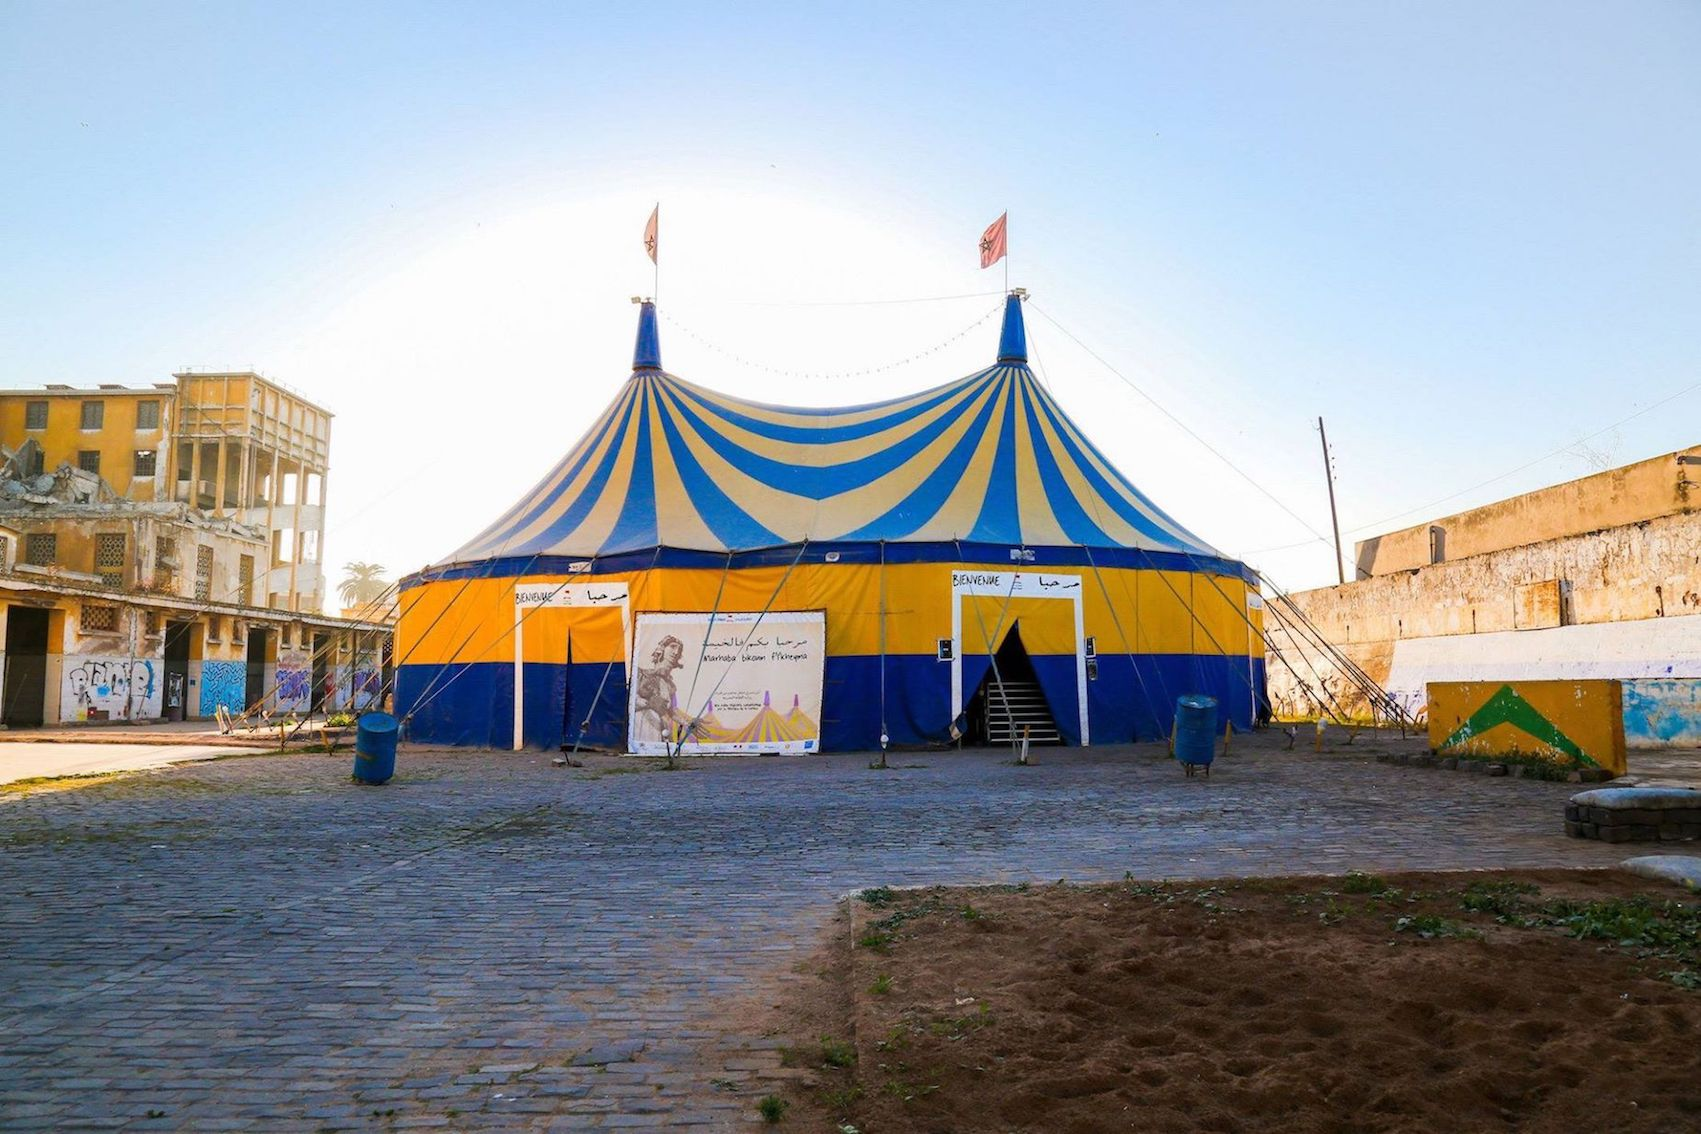 Théâtre Nomade's tent is staked among the cobblestones between the railroad tracks and the remaining buildings of Les Anciens Abattoirs, an abandoned slaughterhouse complex in the working-class neighborhood of Hay Mohammadi in Casablanca.